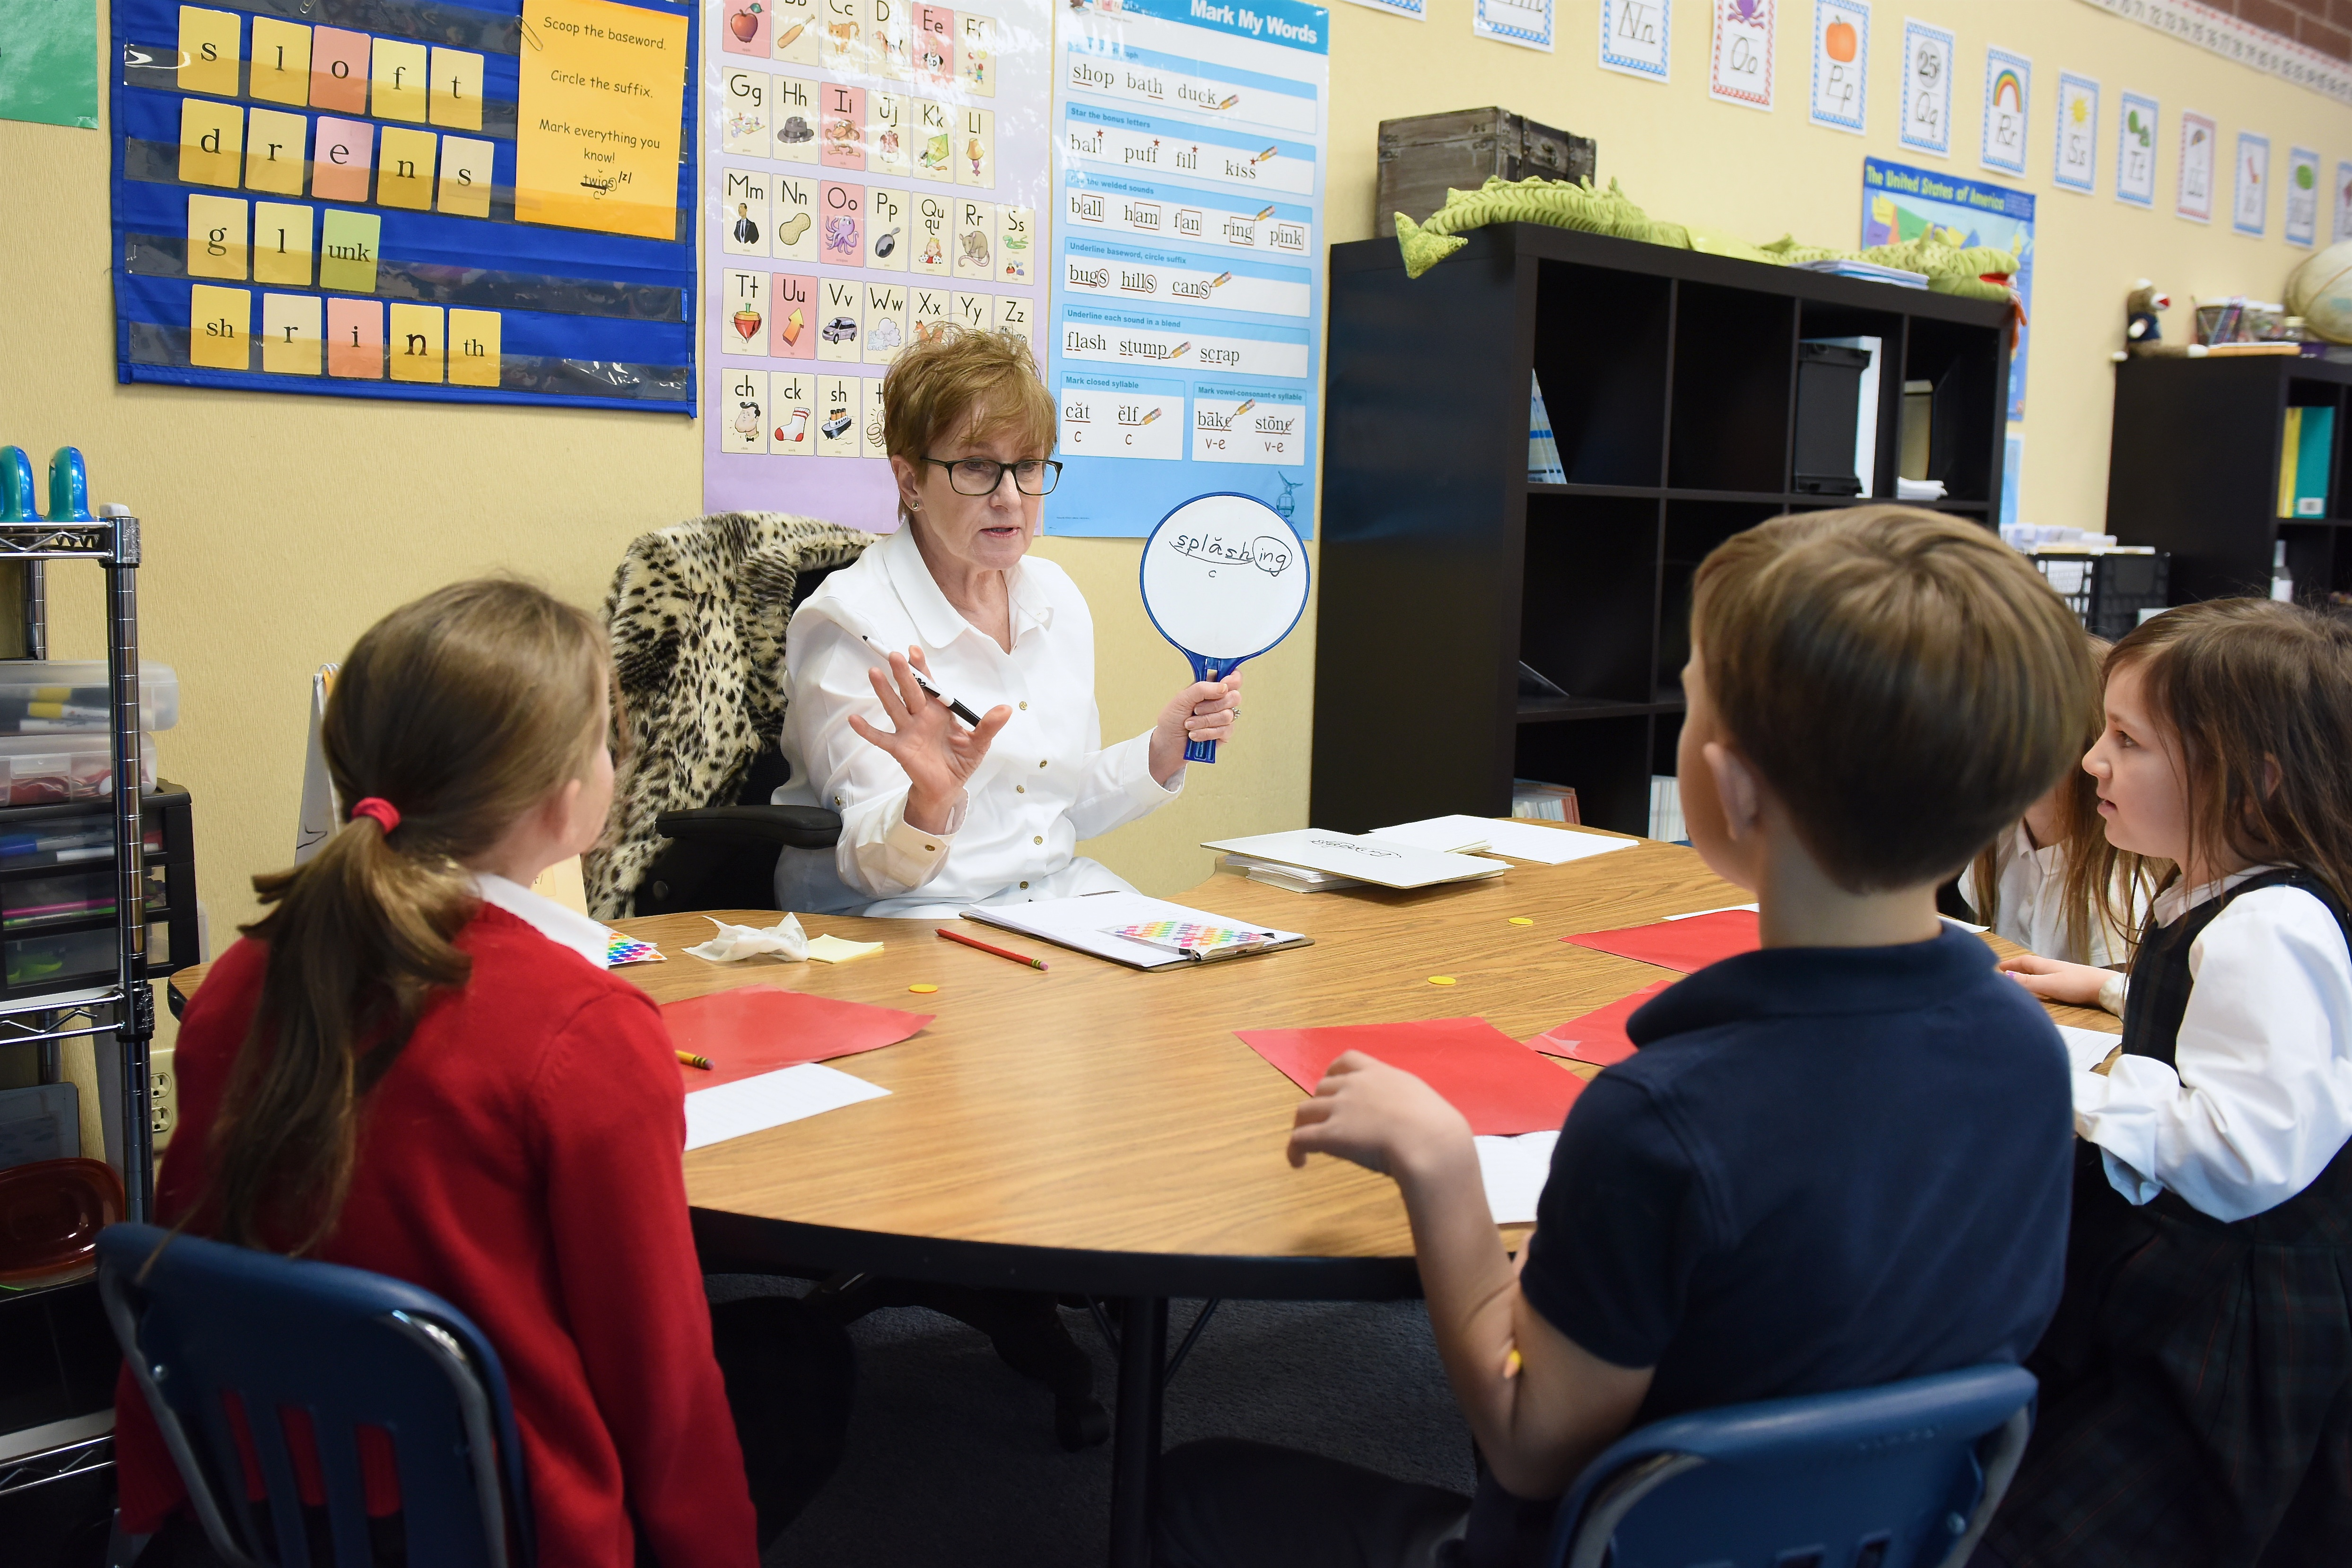 Melinda Zabriskie, Reading Assistant and Retired Waterford Class I Teacher, working with students on a Fundations unit.